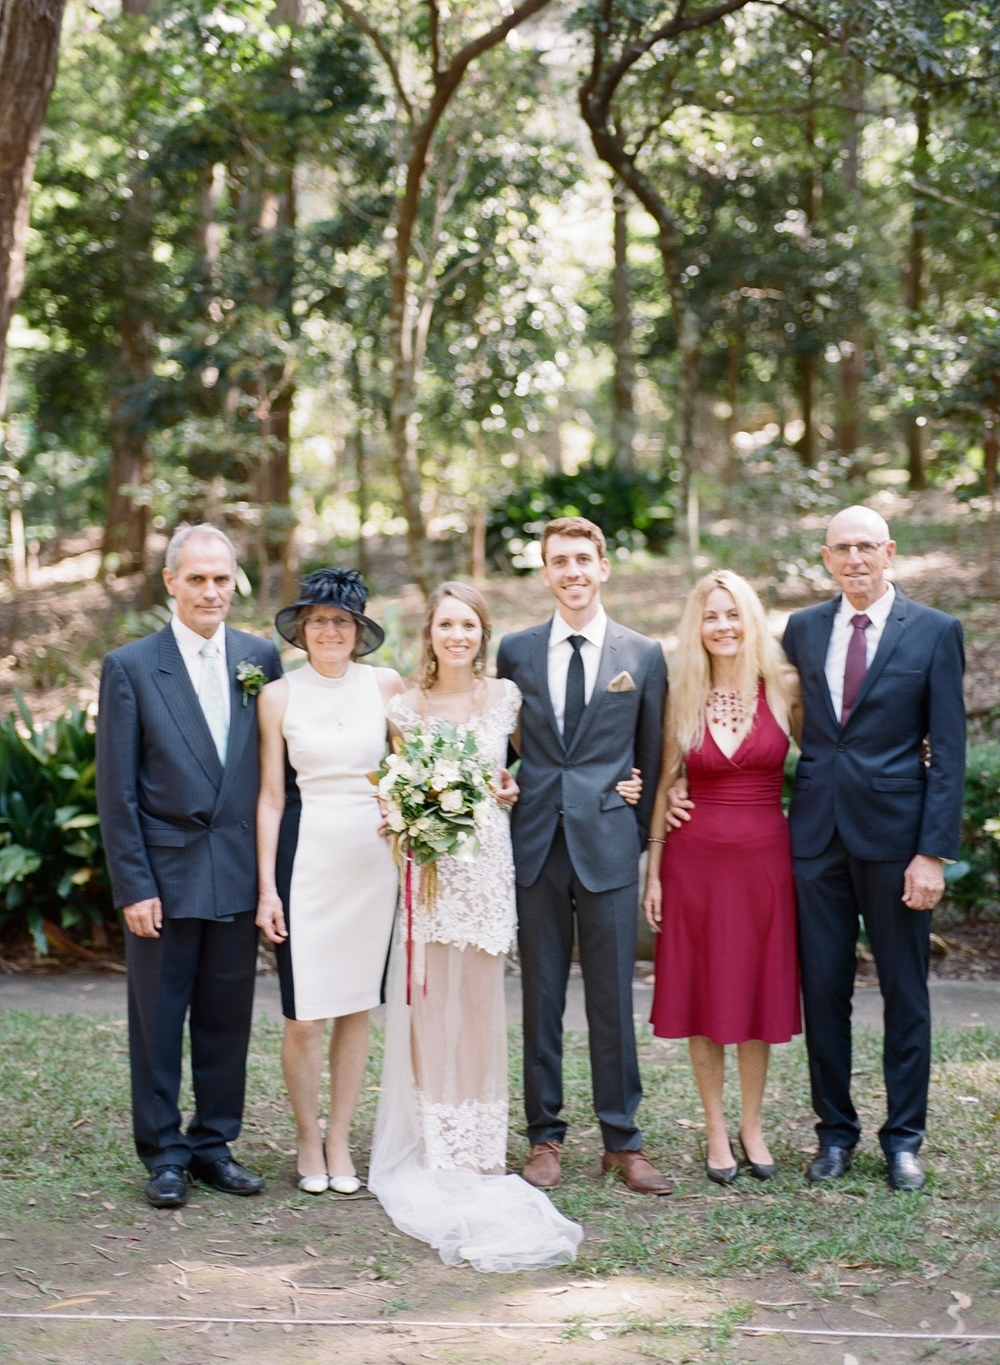 Australian bohemian Garden Wedding by Mr Edwards Photography_1263.jpg